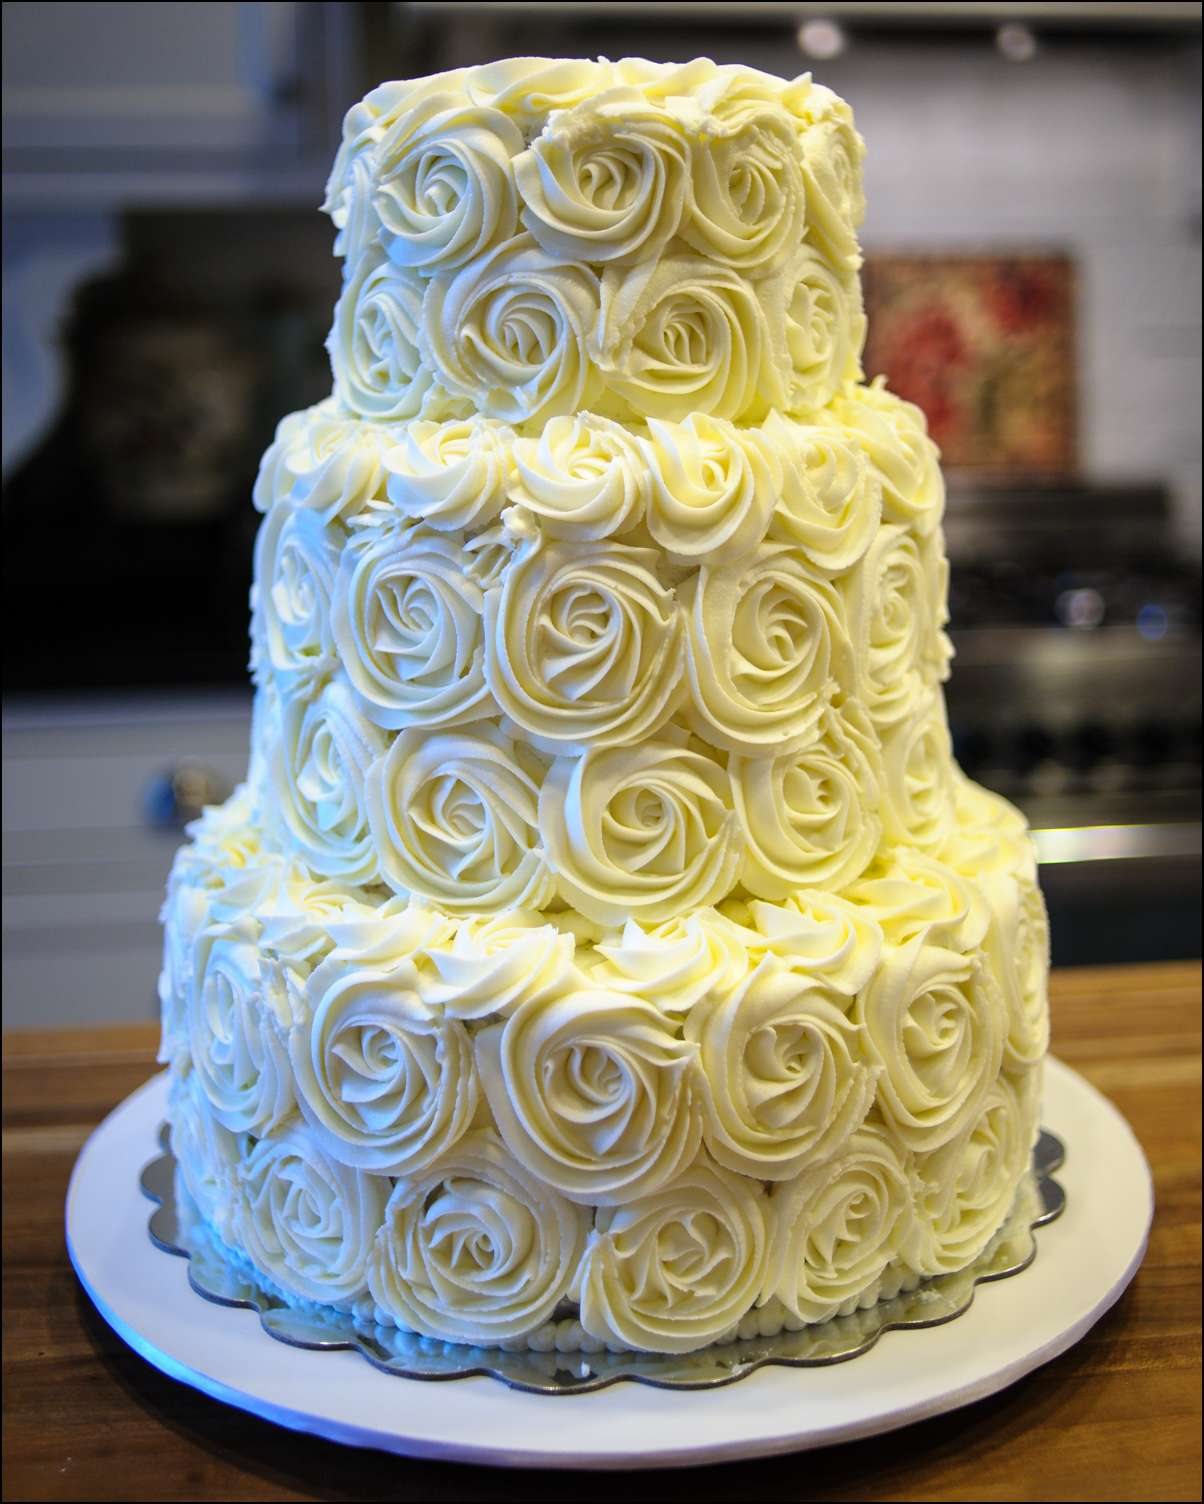 Rosette Wedding Cake Gray Barn Baking